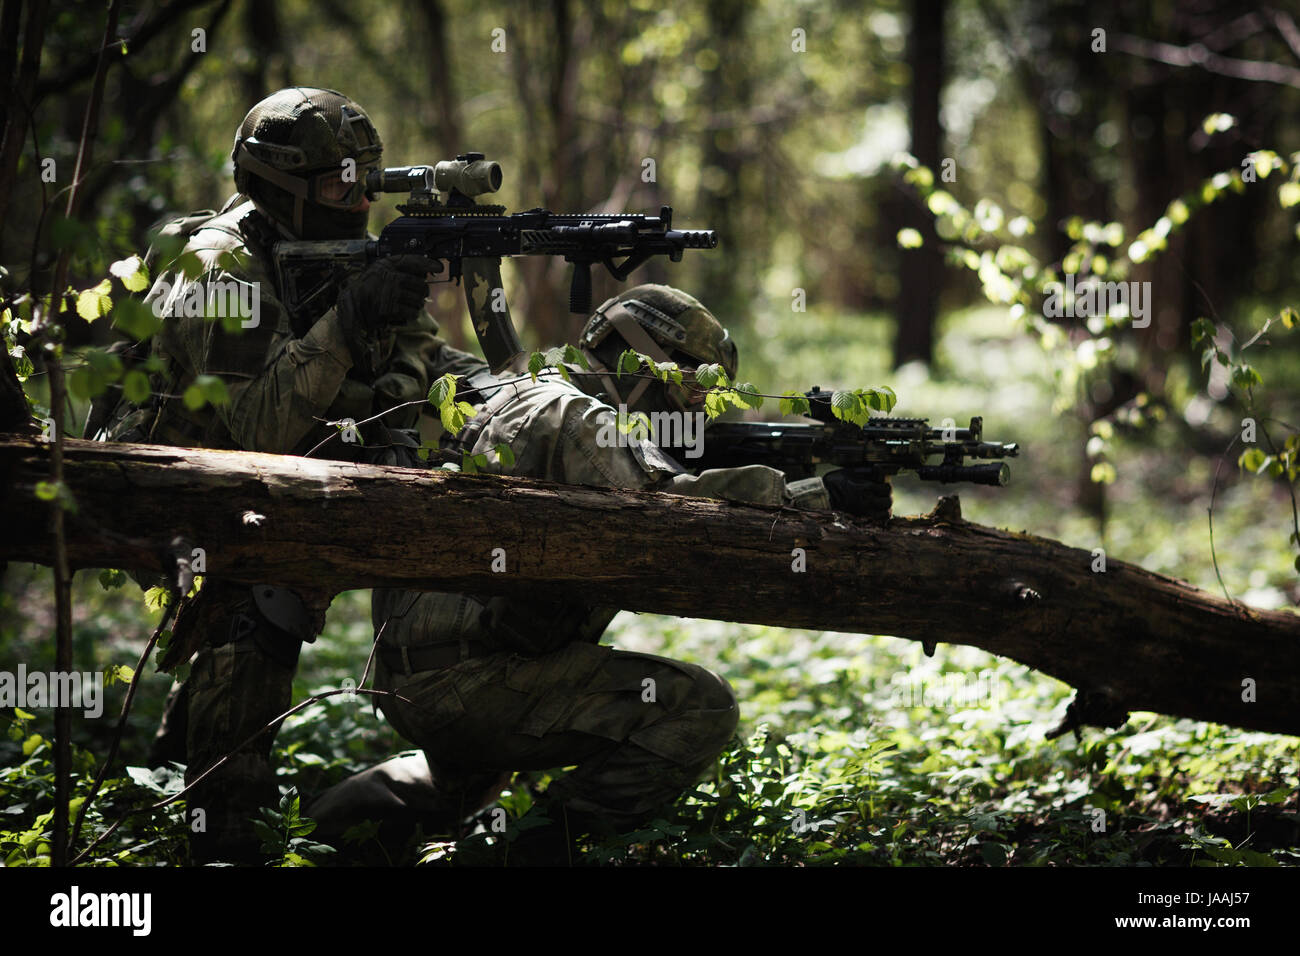 Soldiers in camouflage among trees - Stock Image